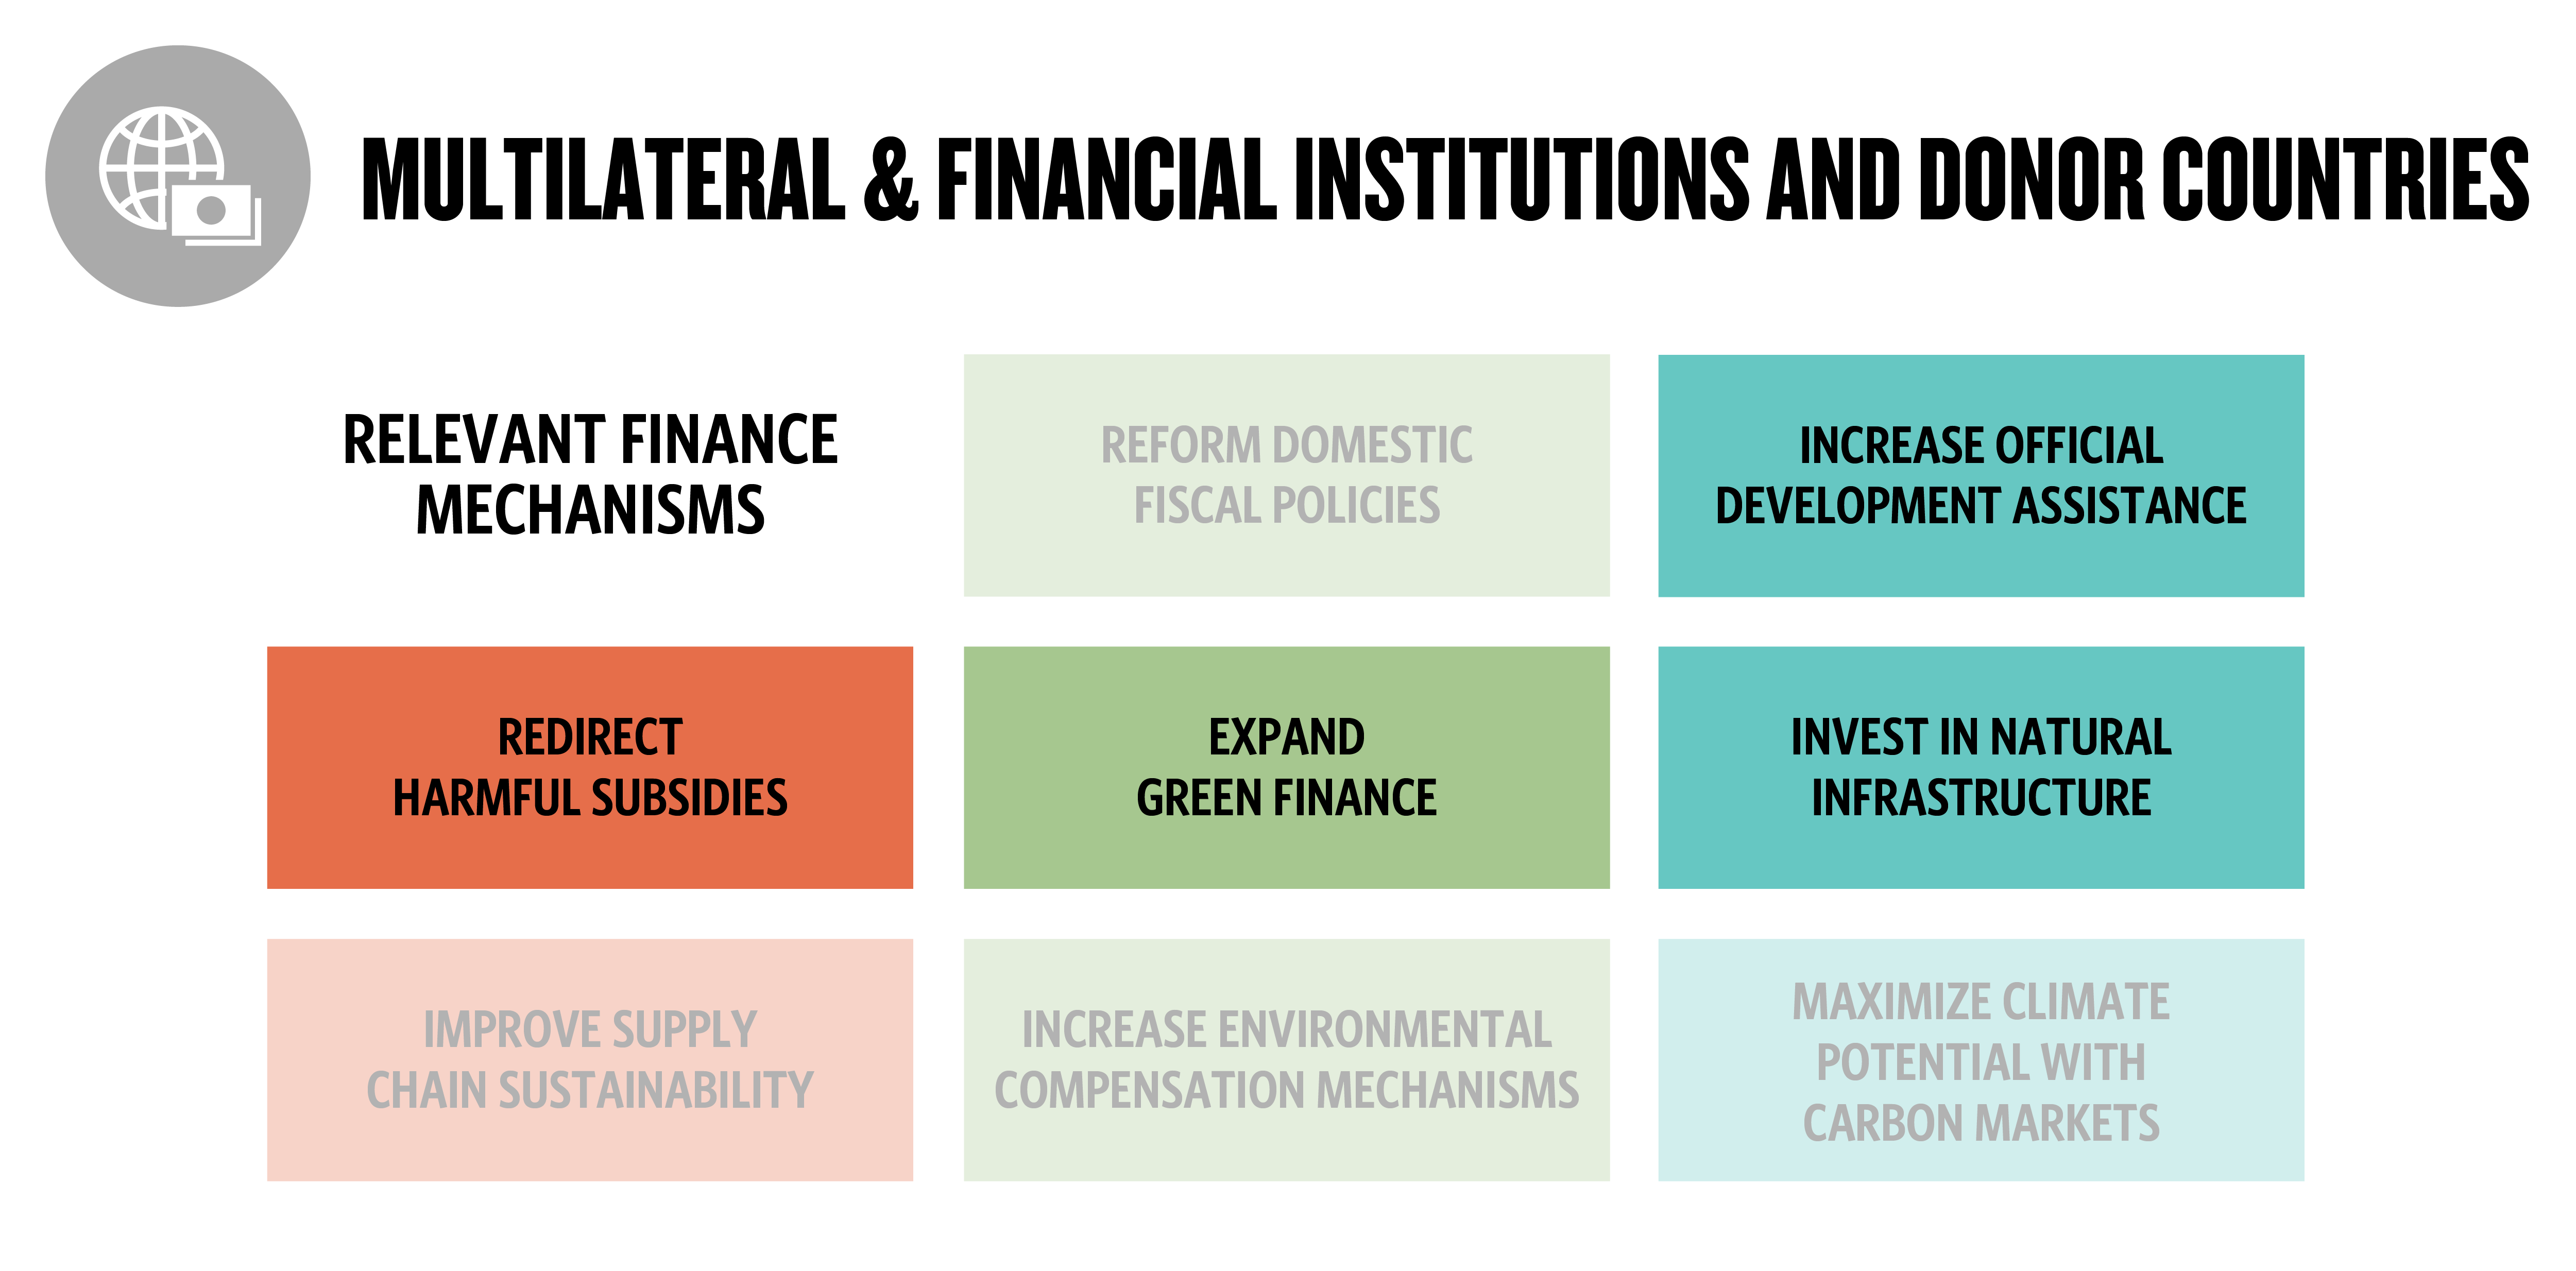 eight boxes with four highlighted to represent which financial mechanisms are relevant to multilateral and financial institutions and donor countries